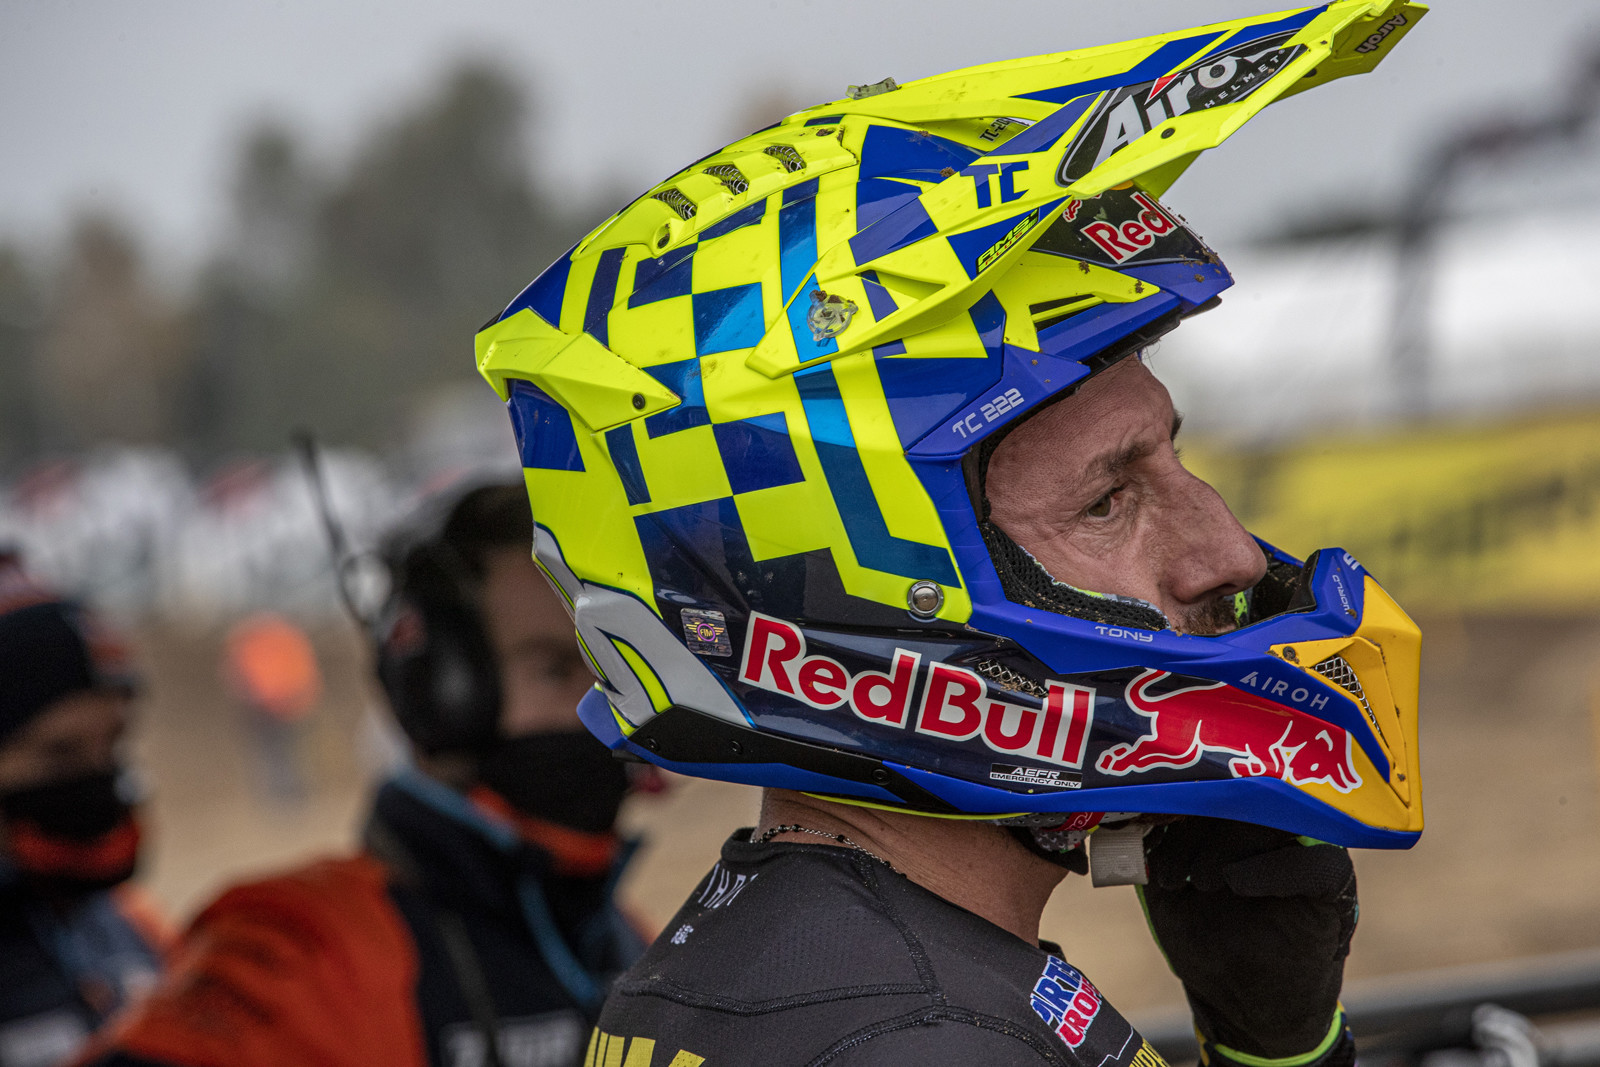 Antonio Cairoli was collected in a first turn crash in moto one that put in 13th at the checkers. 6th in the second moto gave him 9th overall on the day. But he got a new lid!